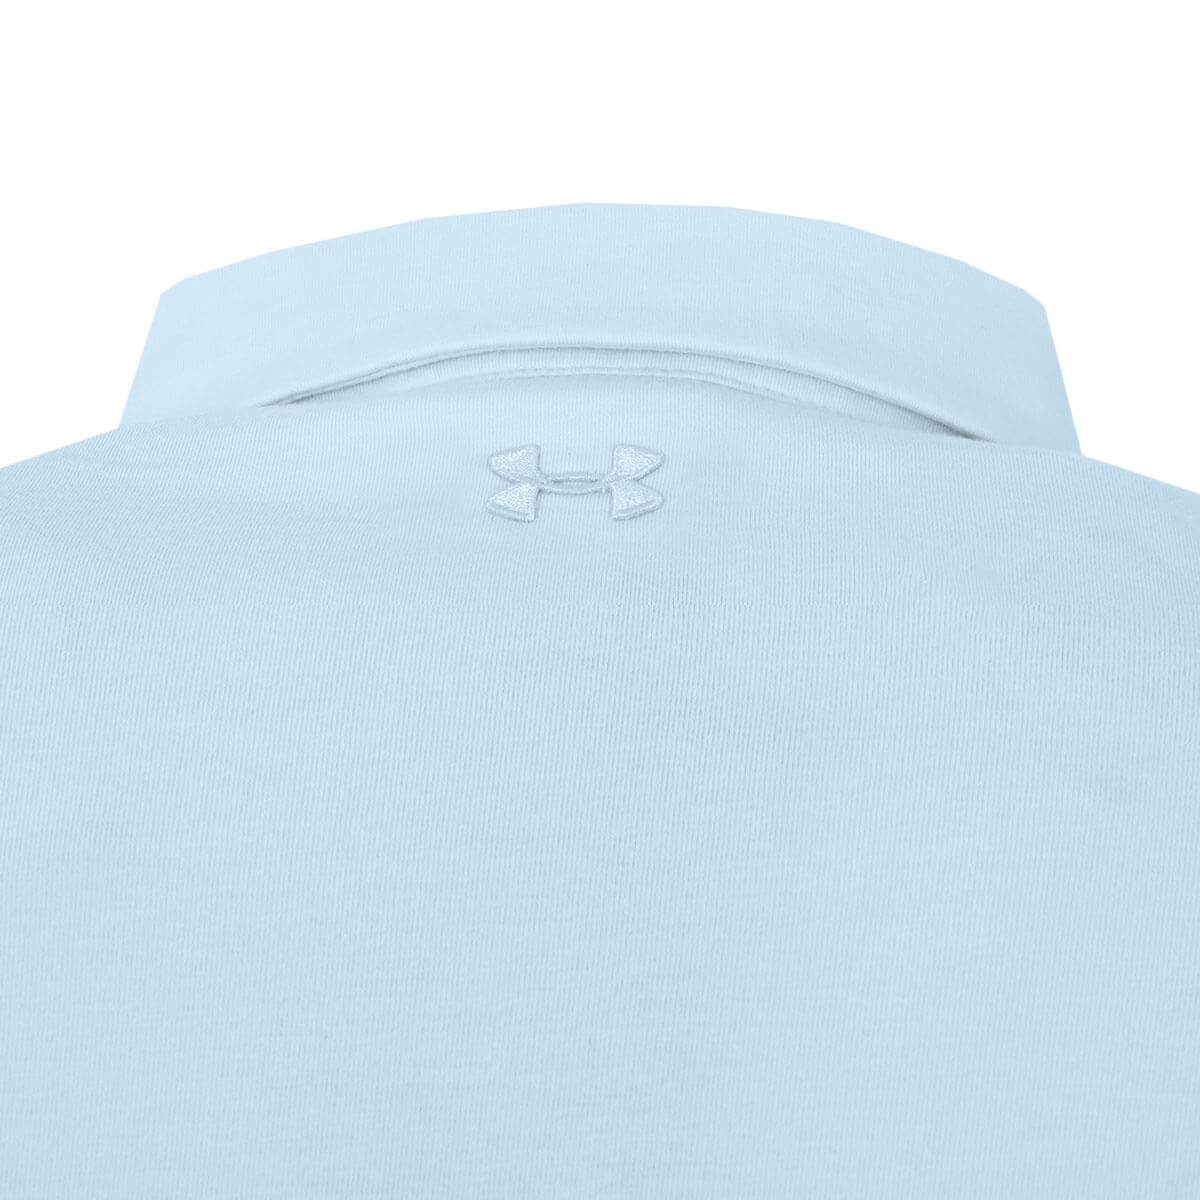 Under-Armour-Mens-2019-CC-Scramble-Charged-Cotton-Stretch-Golf-Polo-Shirt thumbnail 20